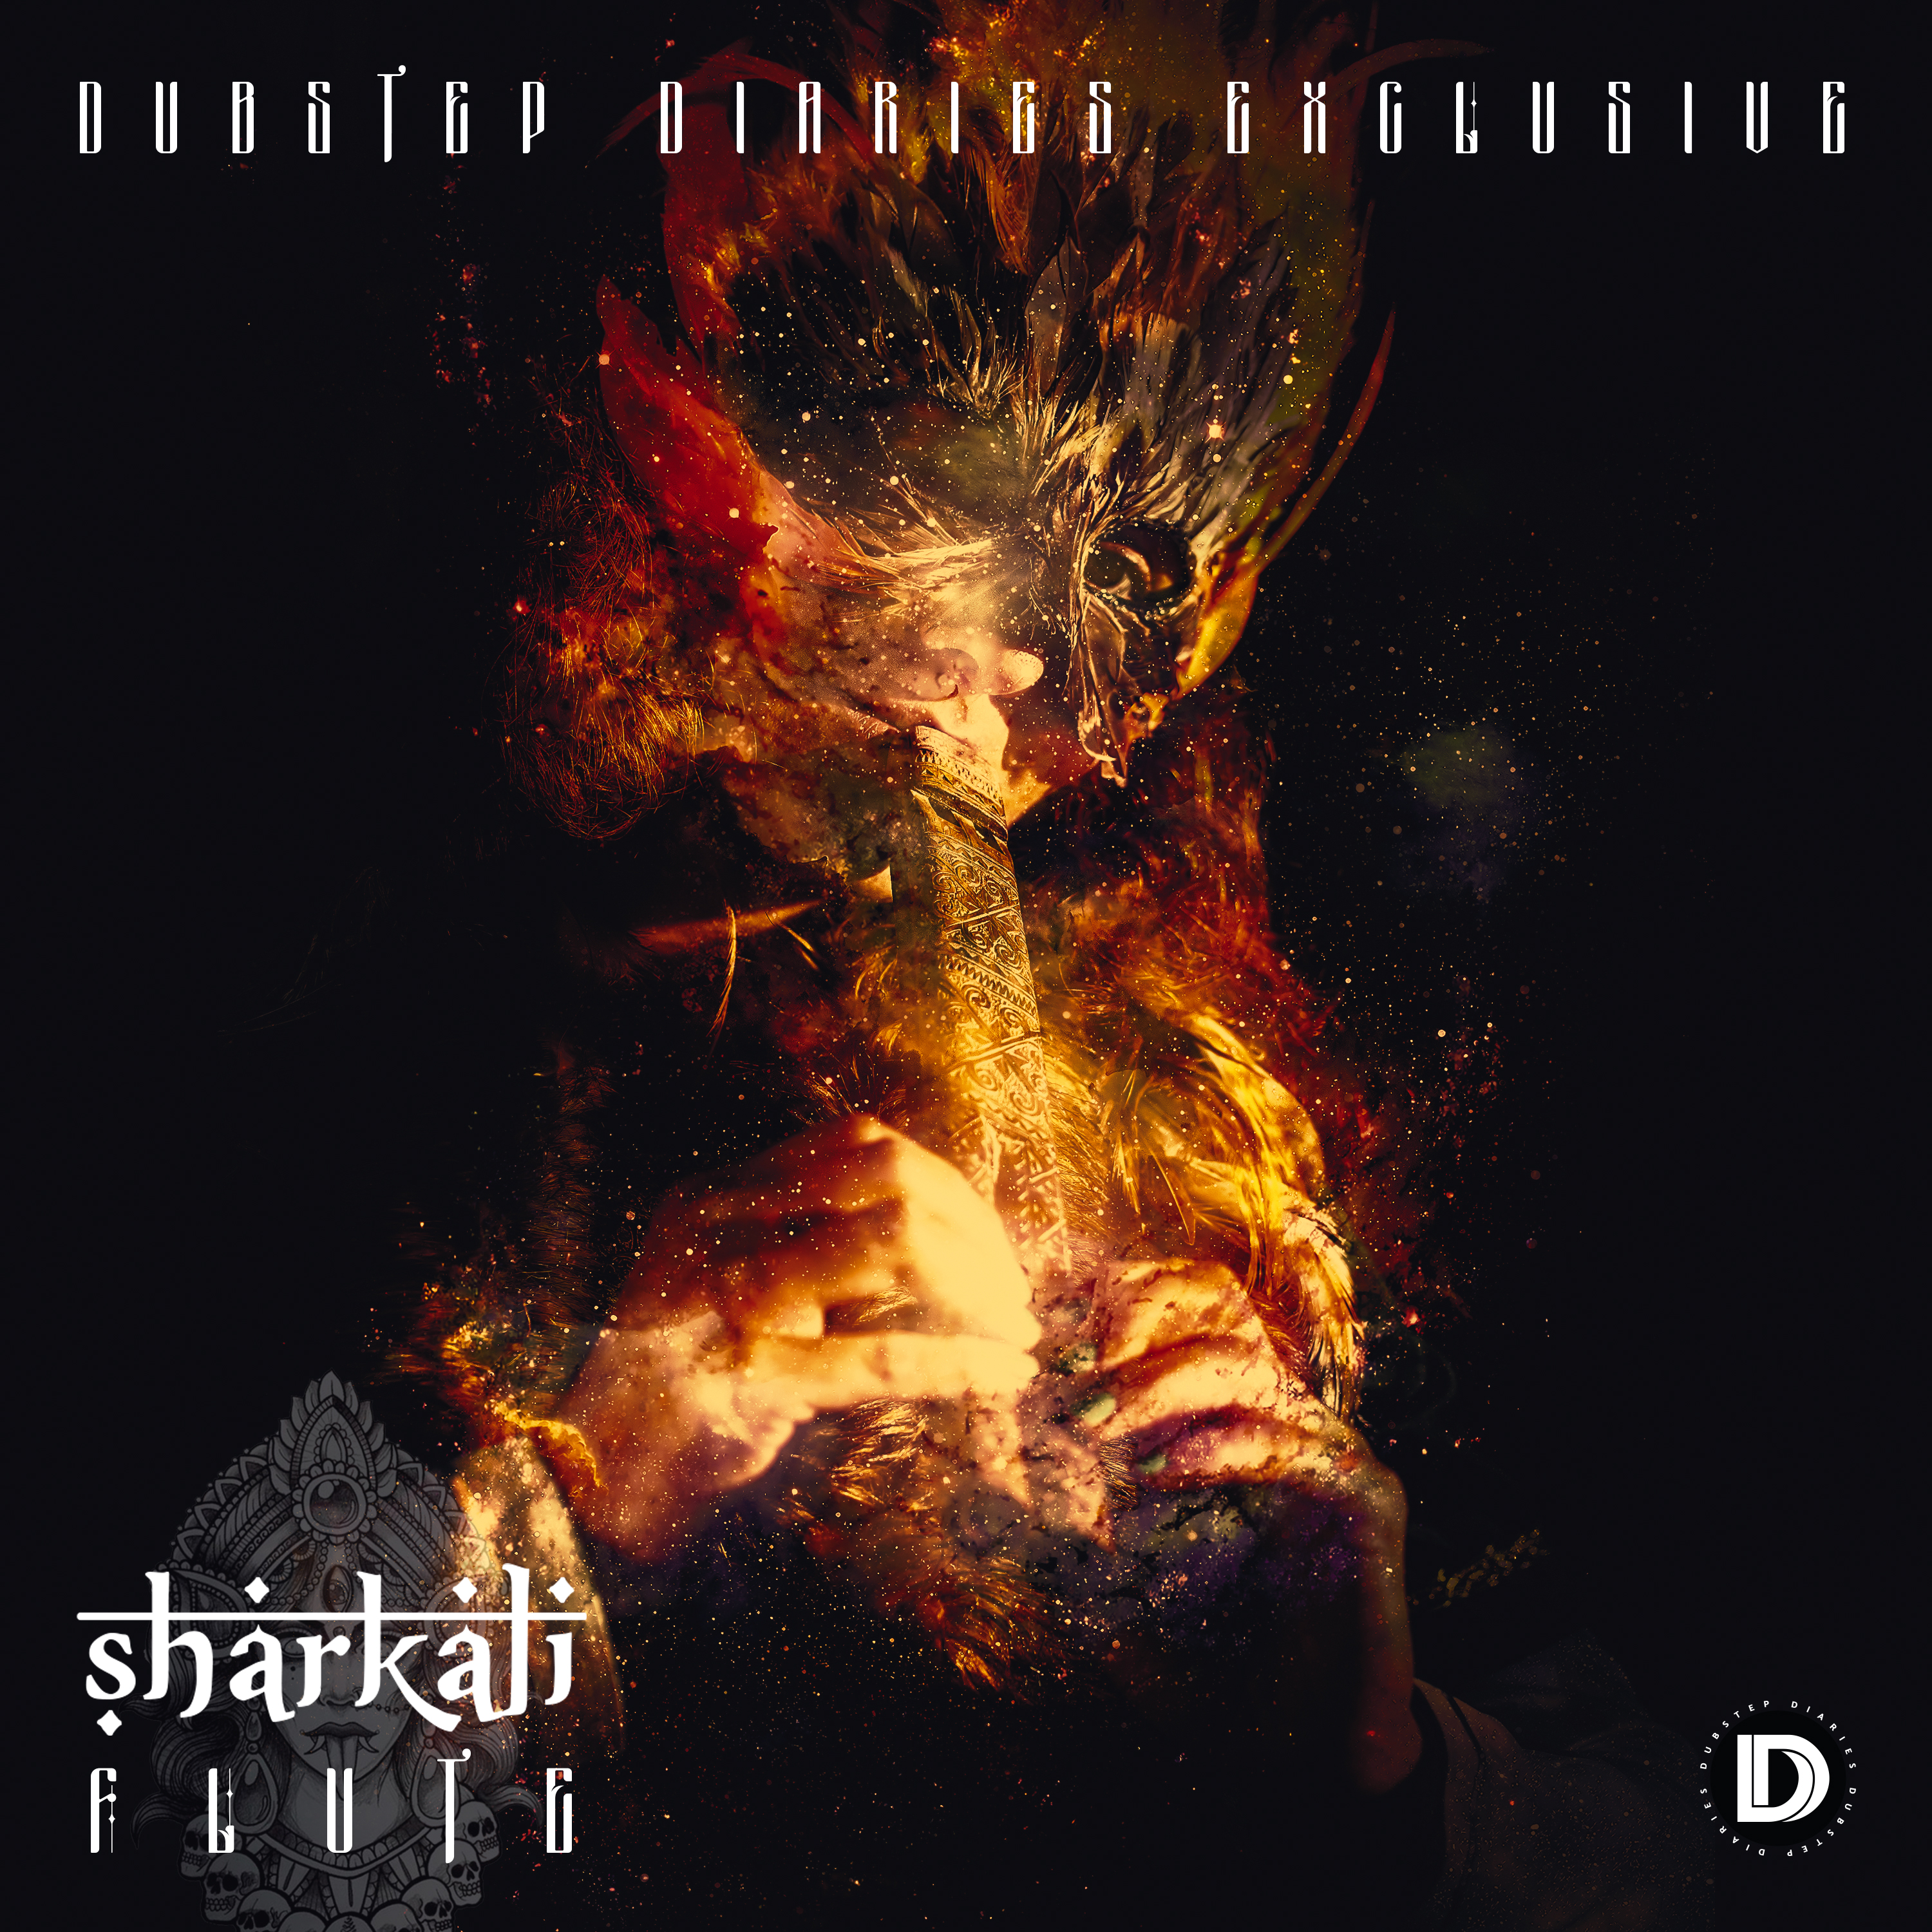 Sharkali - Flute [Dubstep Diaries Exclusive] Image